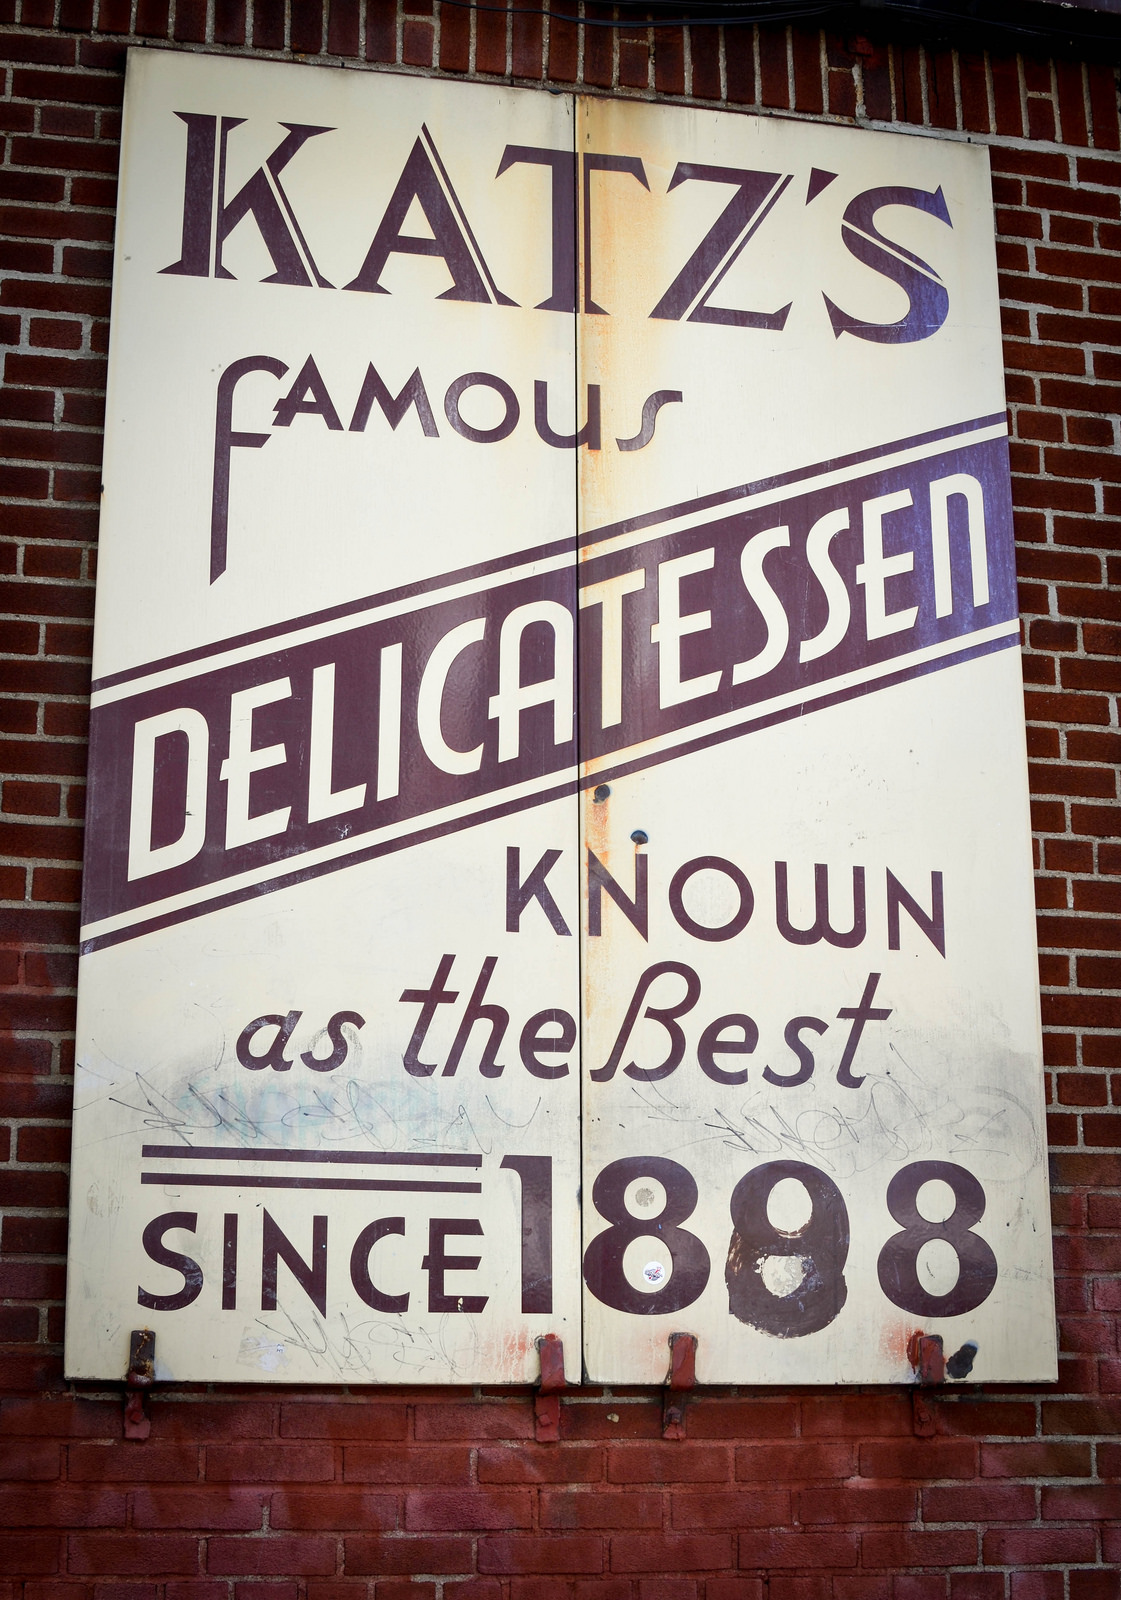 Katz's delicatessen, new york